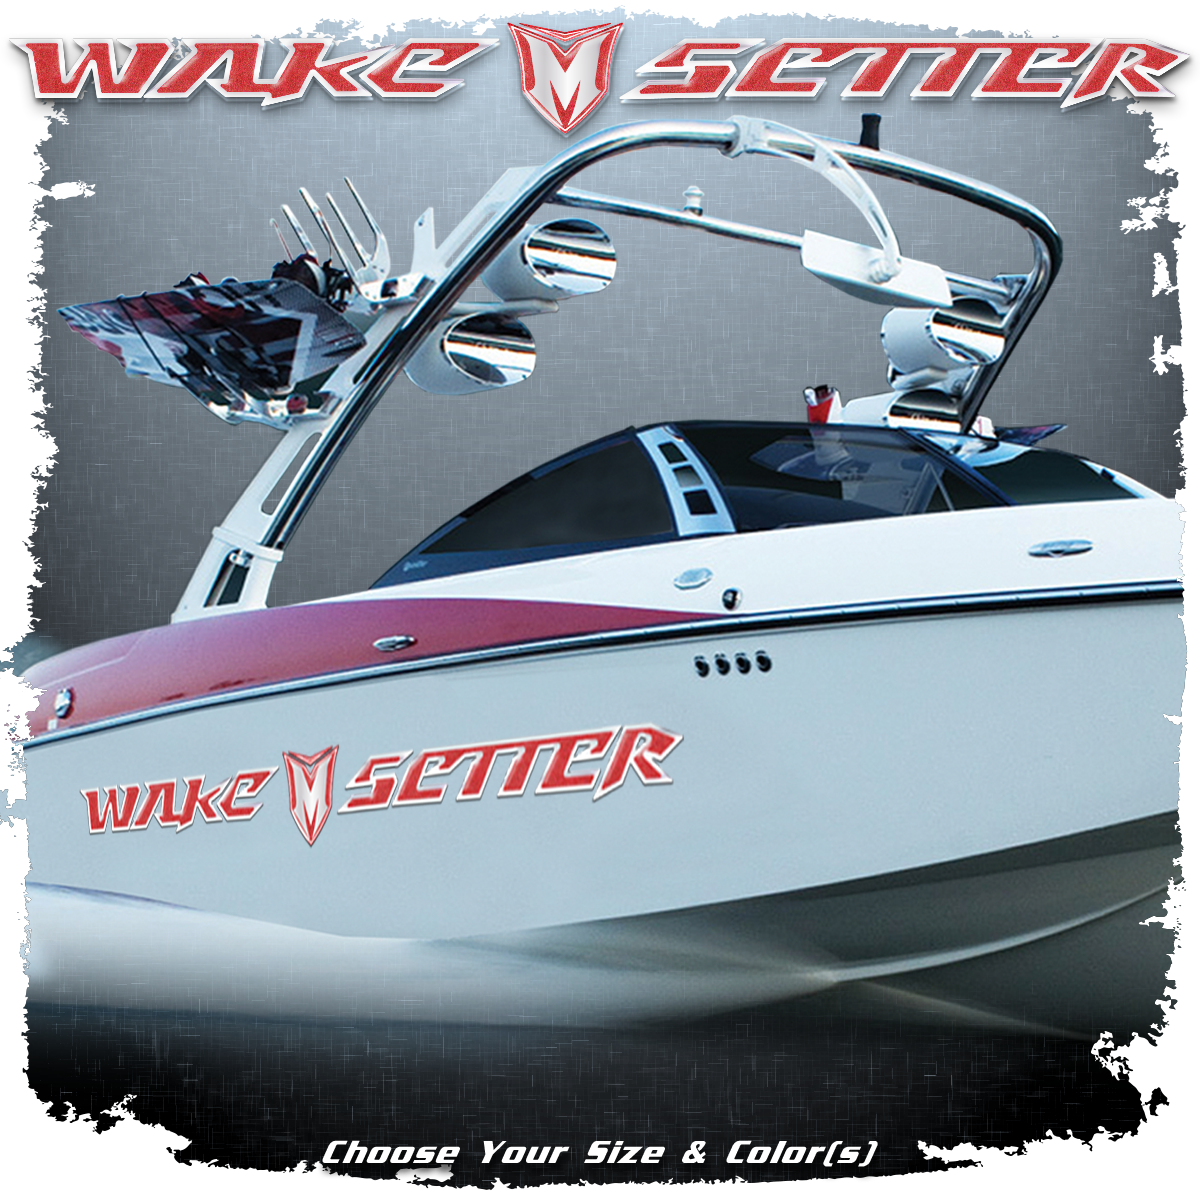 Malibu Wakesetter Decal Set, 2007-09, Choose Your Colors (2 included)